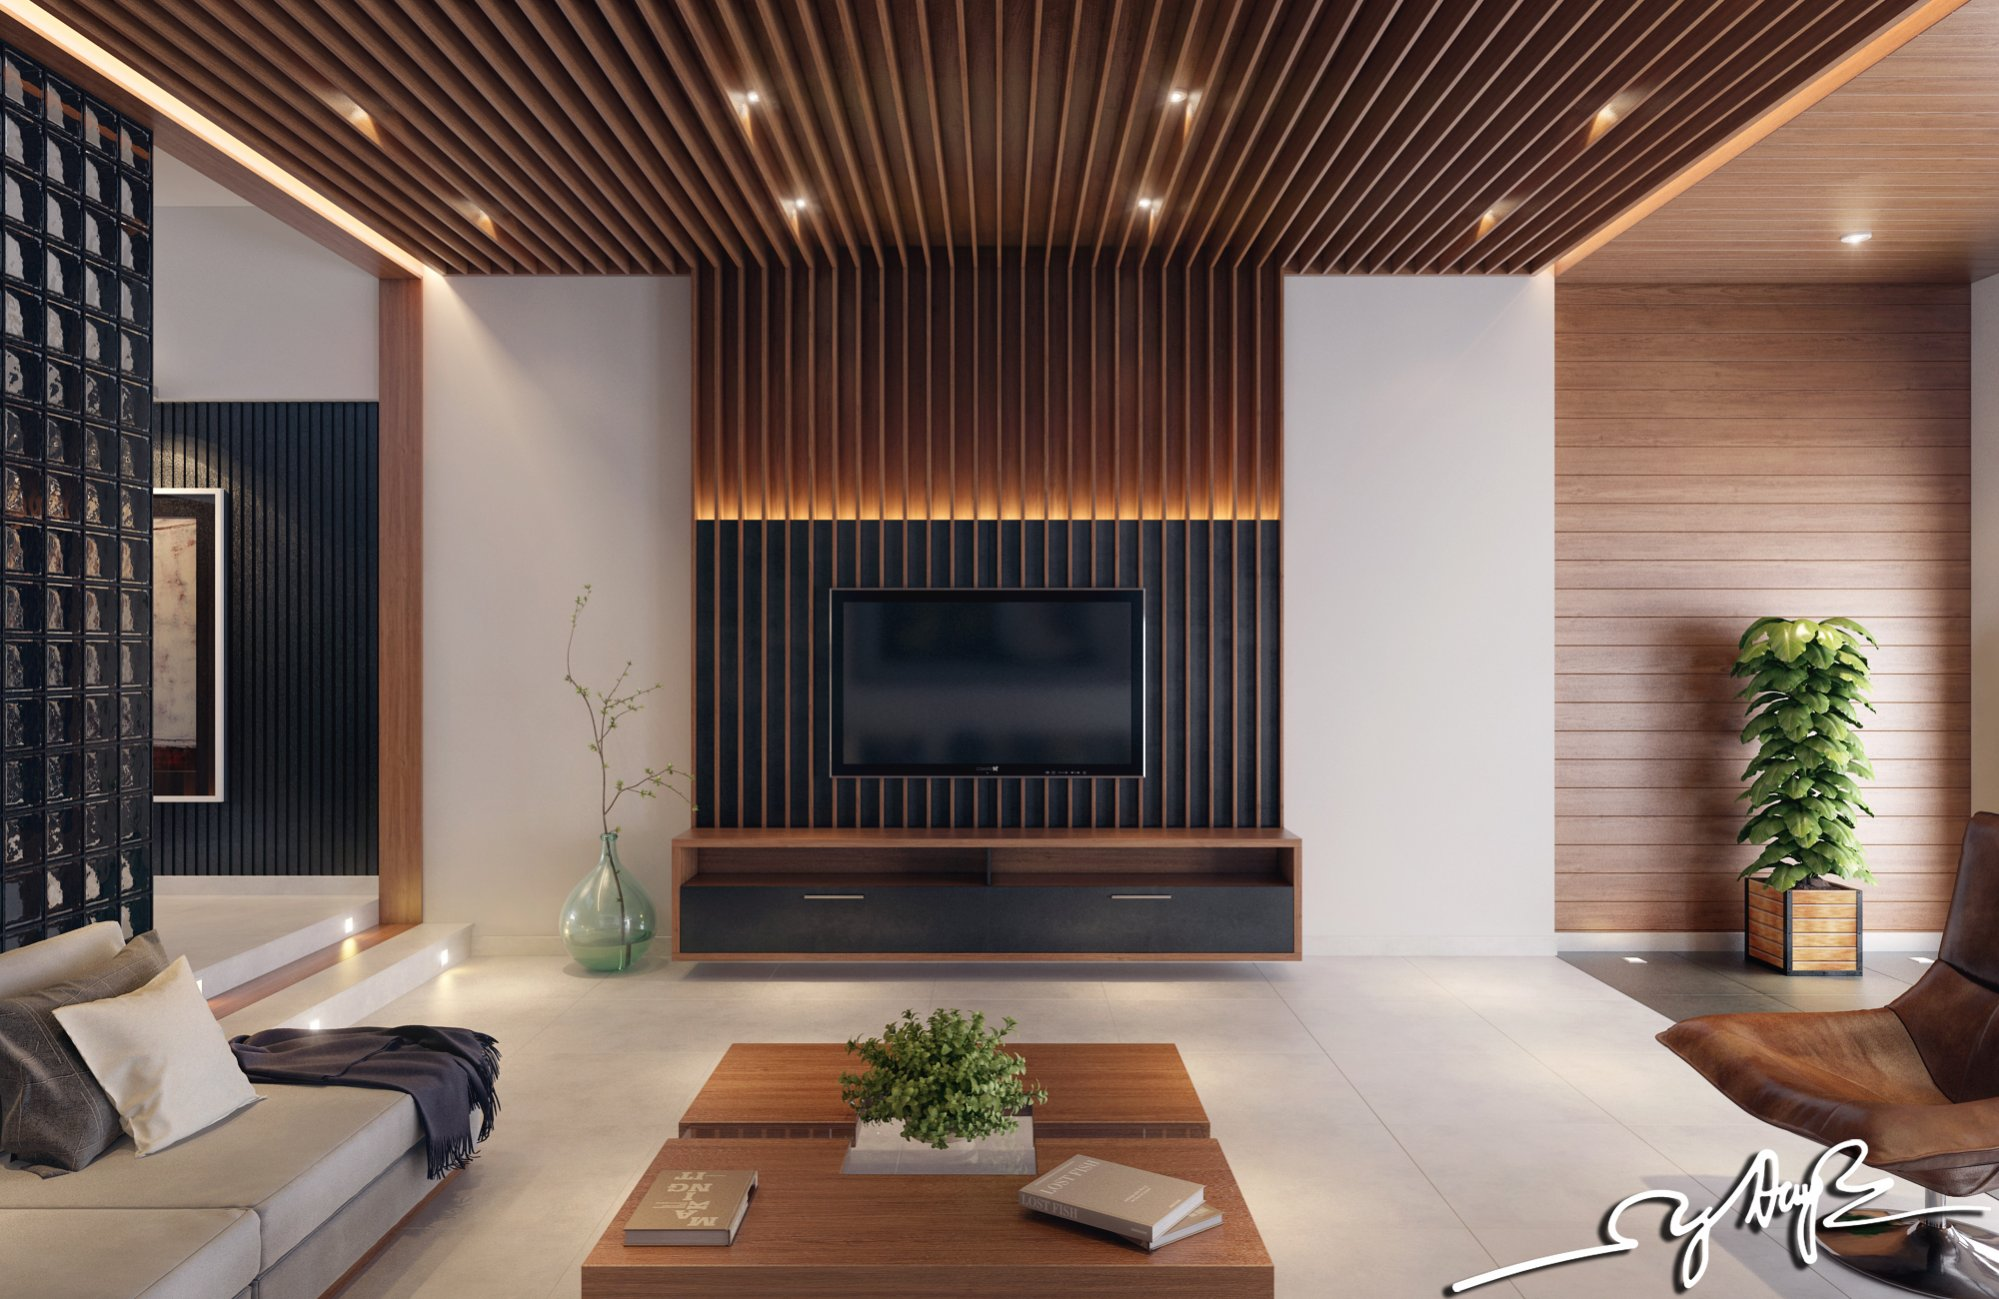 Interior Design Close To Nature: Rich Wood Themes And Indoor Vertical  Gardens